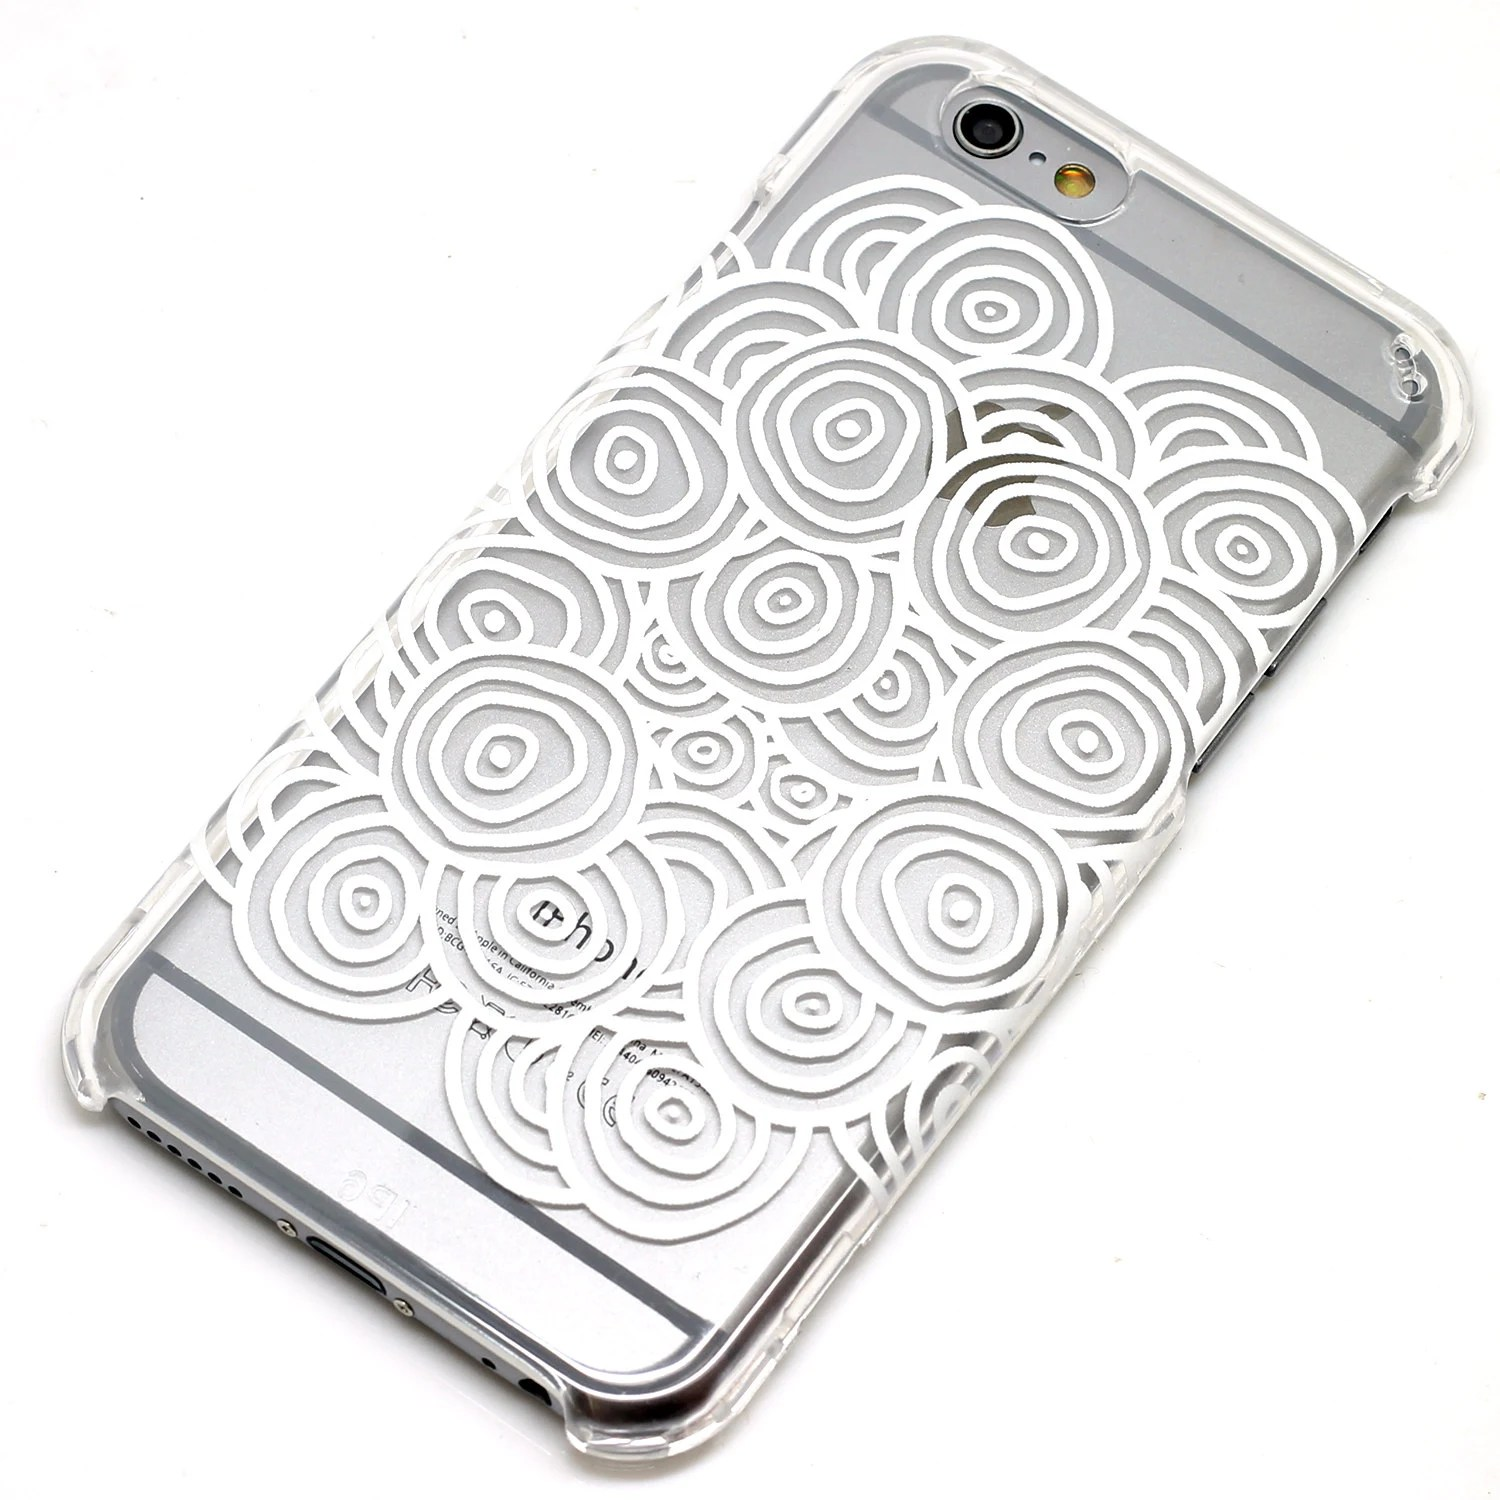 Dazed Circles White Henna Style On Clear Phone Case Iphone 6